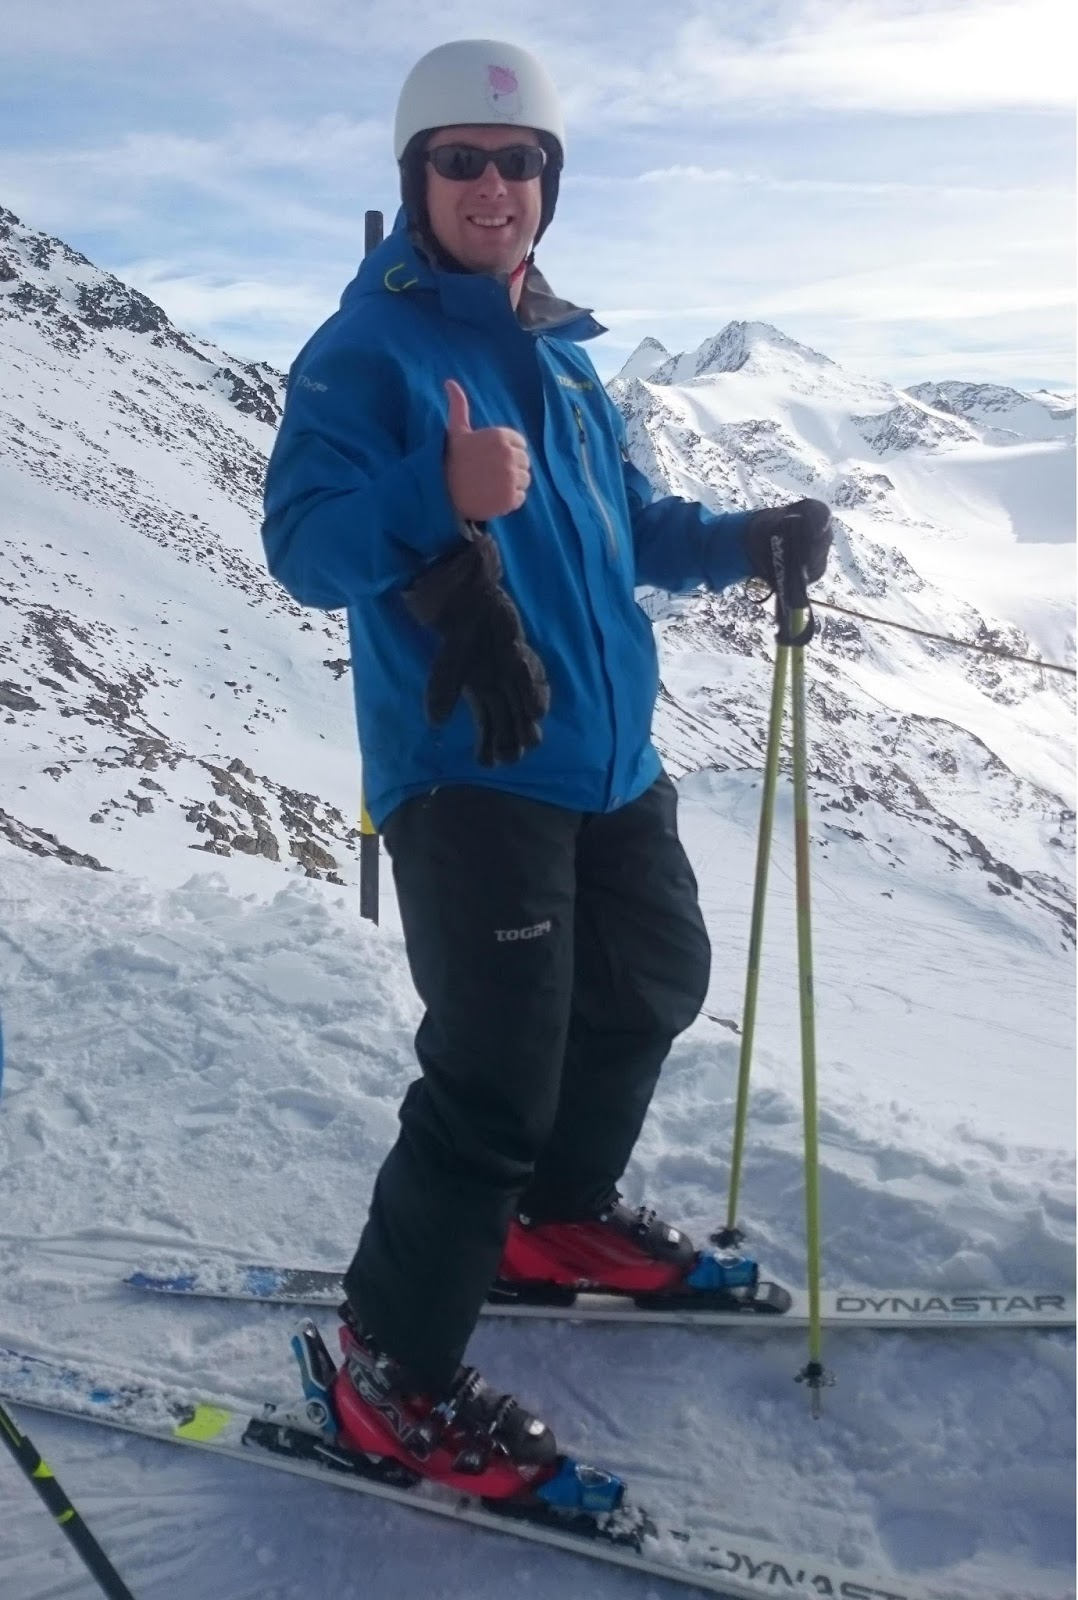 Keratoconus will not stop me from skiing